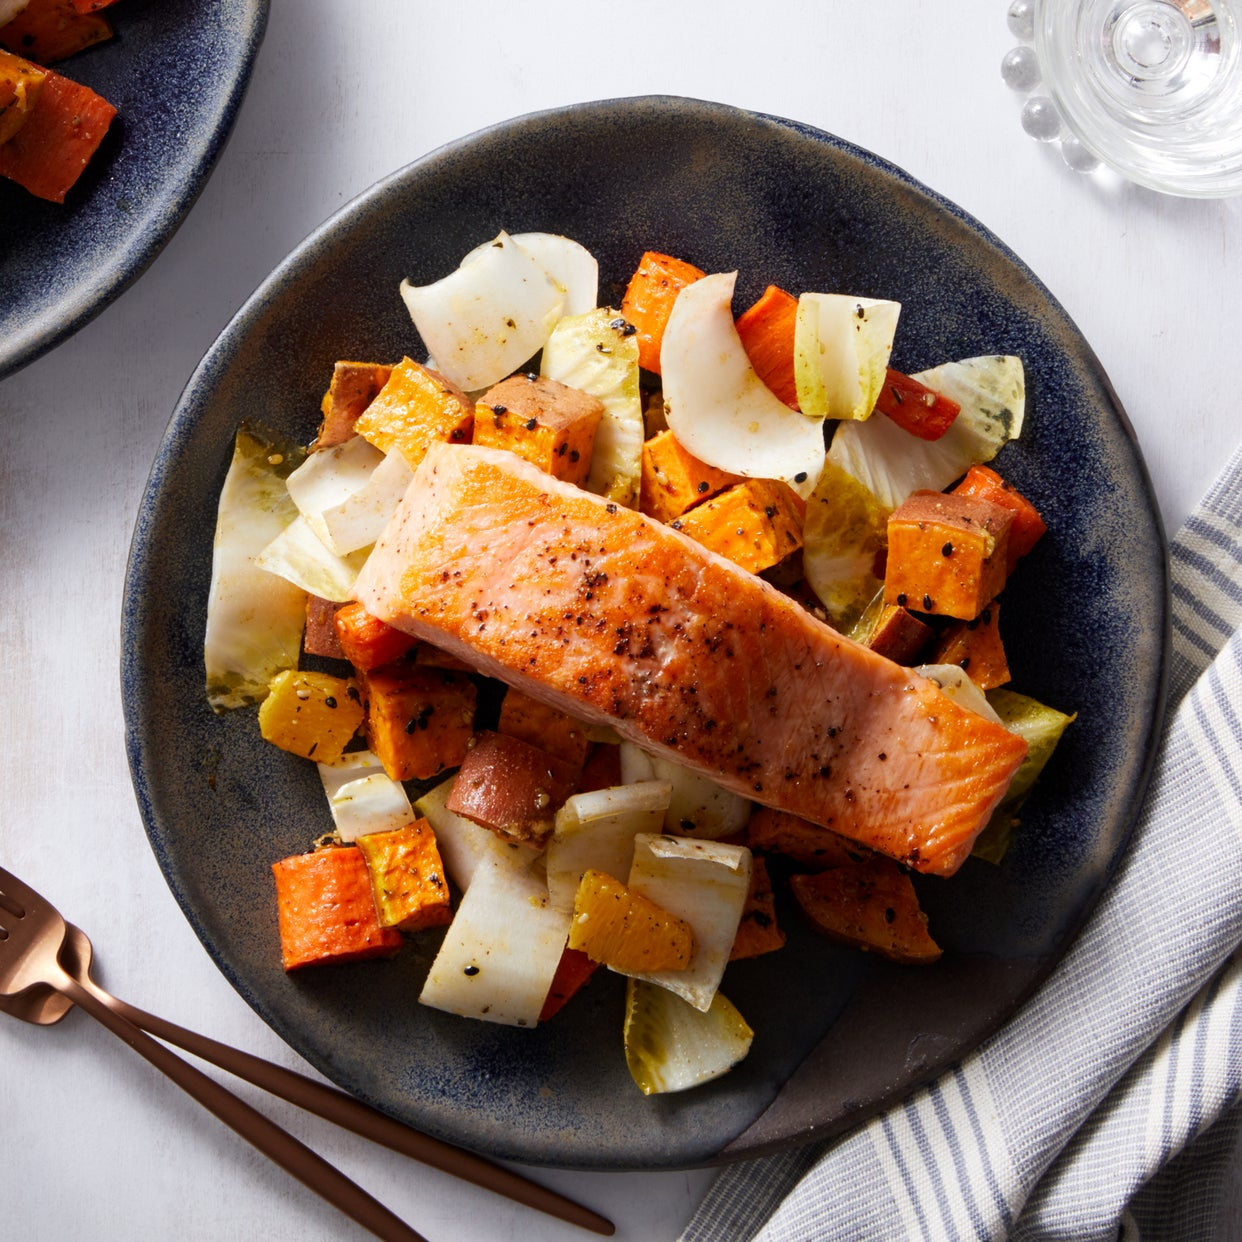 Salmon & Dukkah-Spiced Vegetables with Orange & Endive